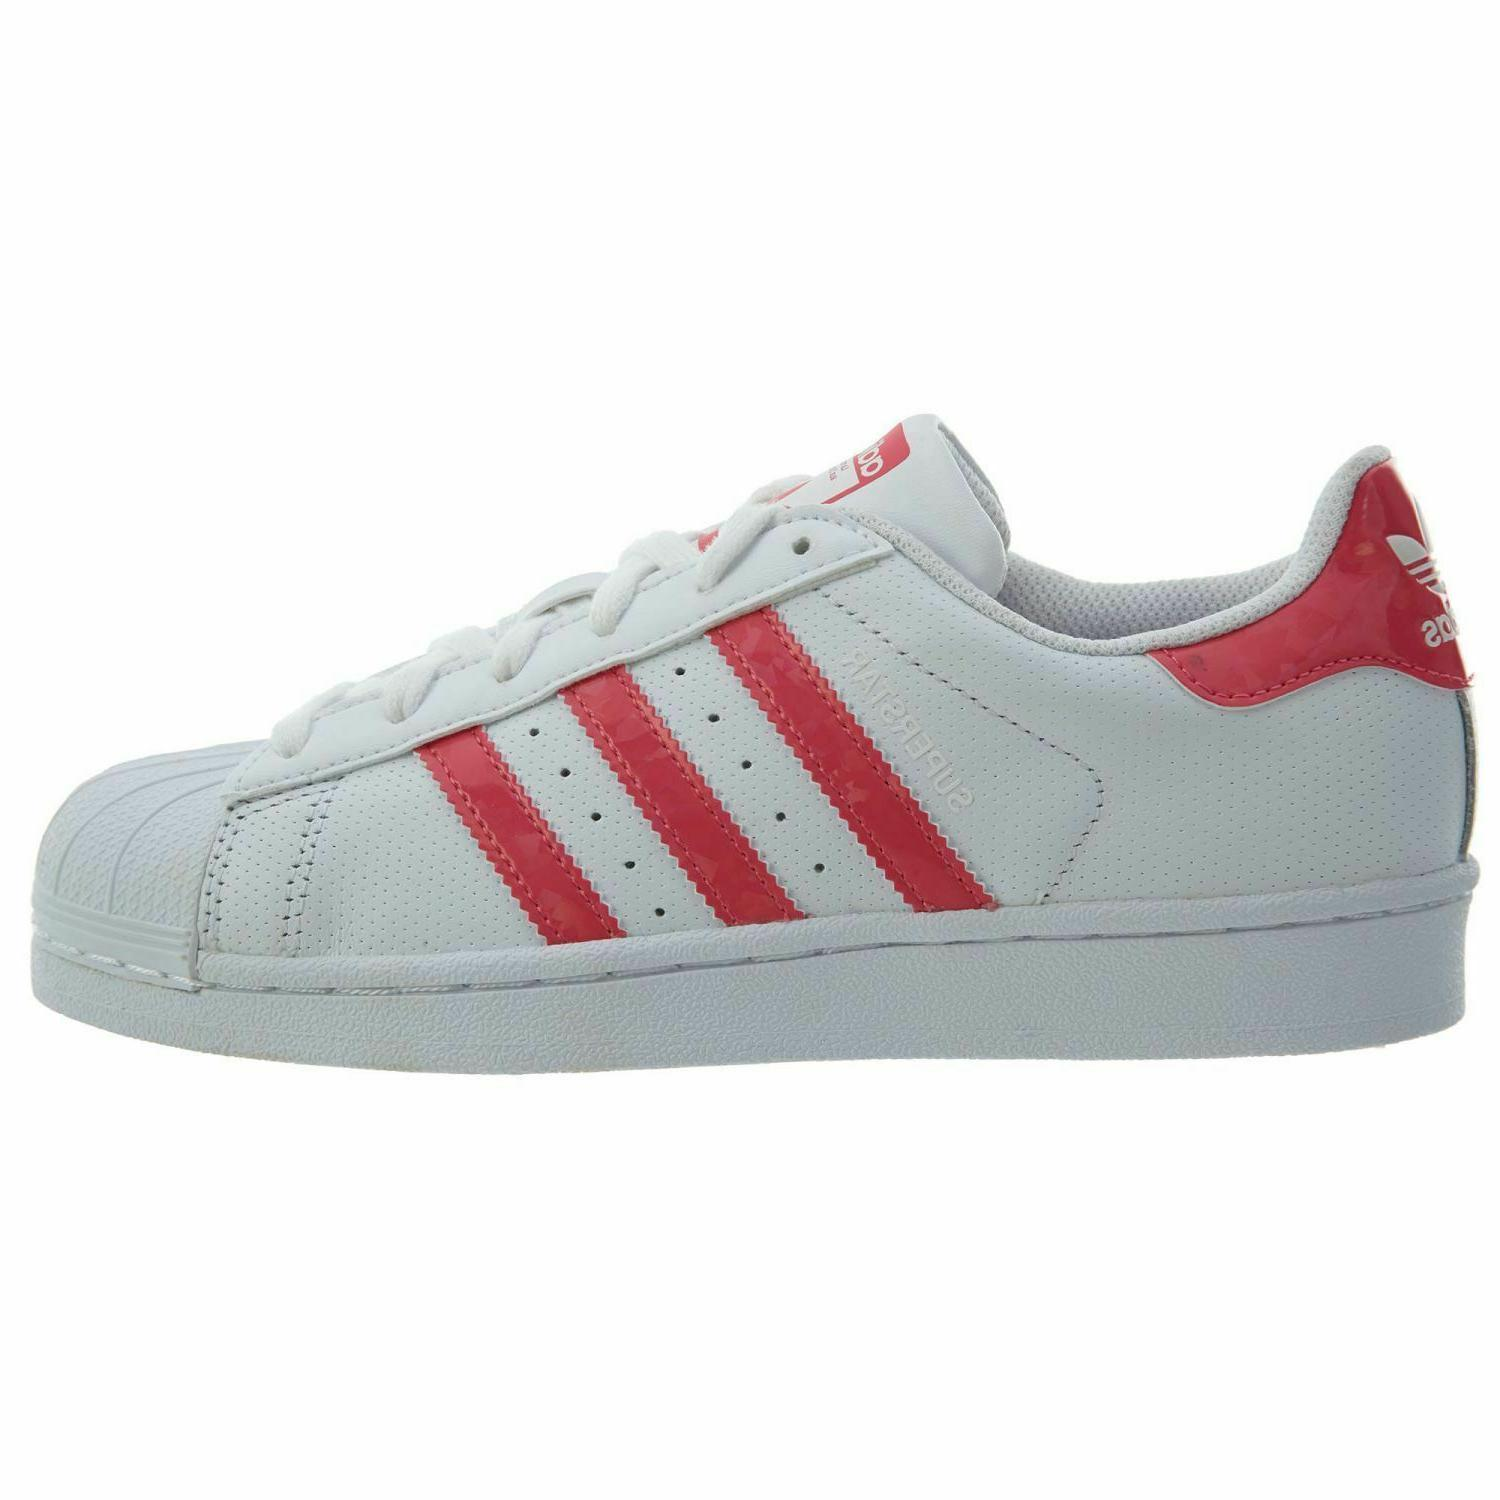 ADIDAS SUPERSTAR White Pink Shoes